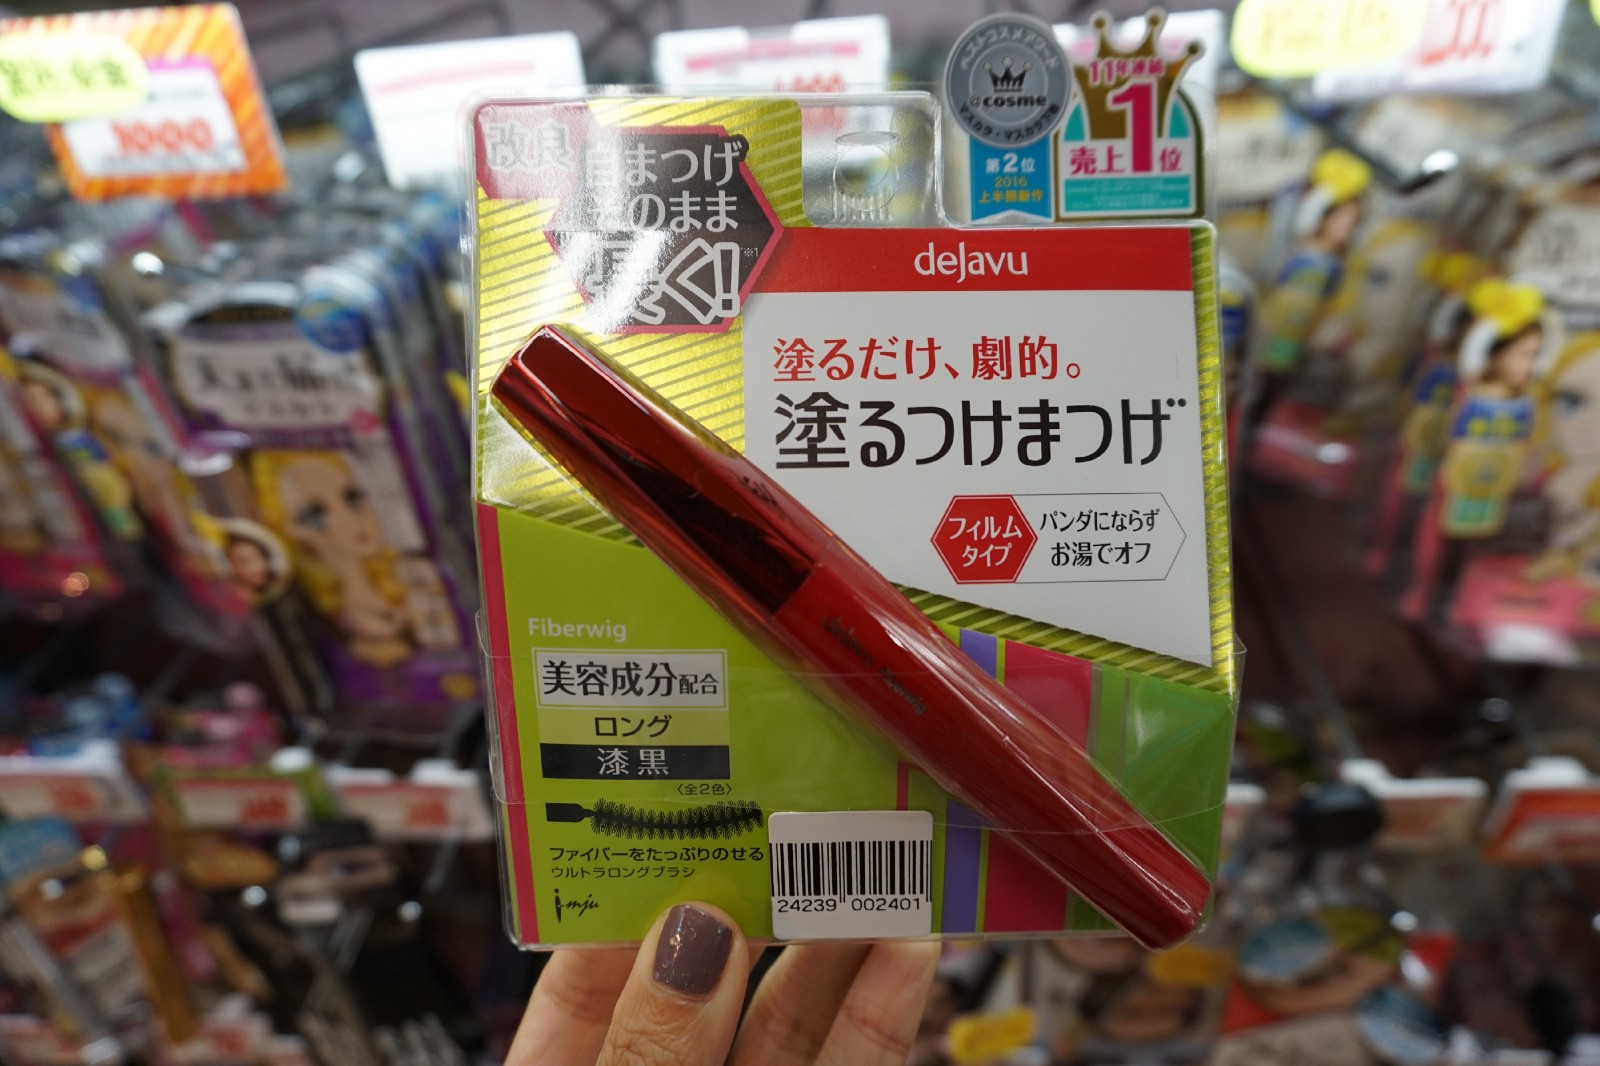 470bab54741 dejavu is a hit maker of Japanese eye makeup products including mascara,  eyeliner and eyebrow, and has produced several best-selling beauty items of  all ...